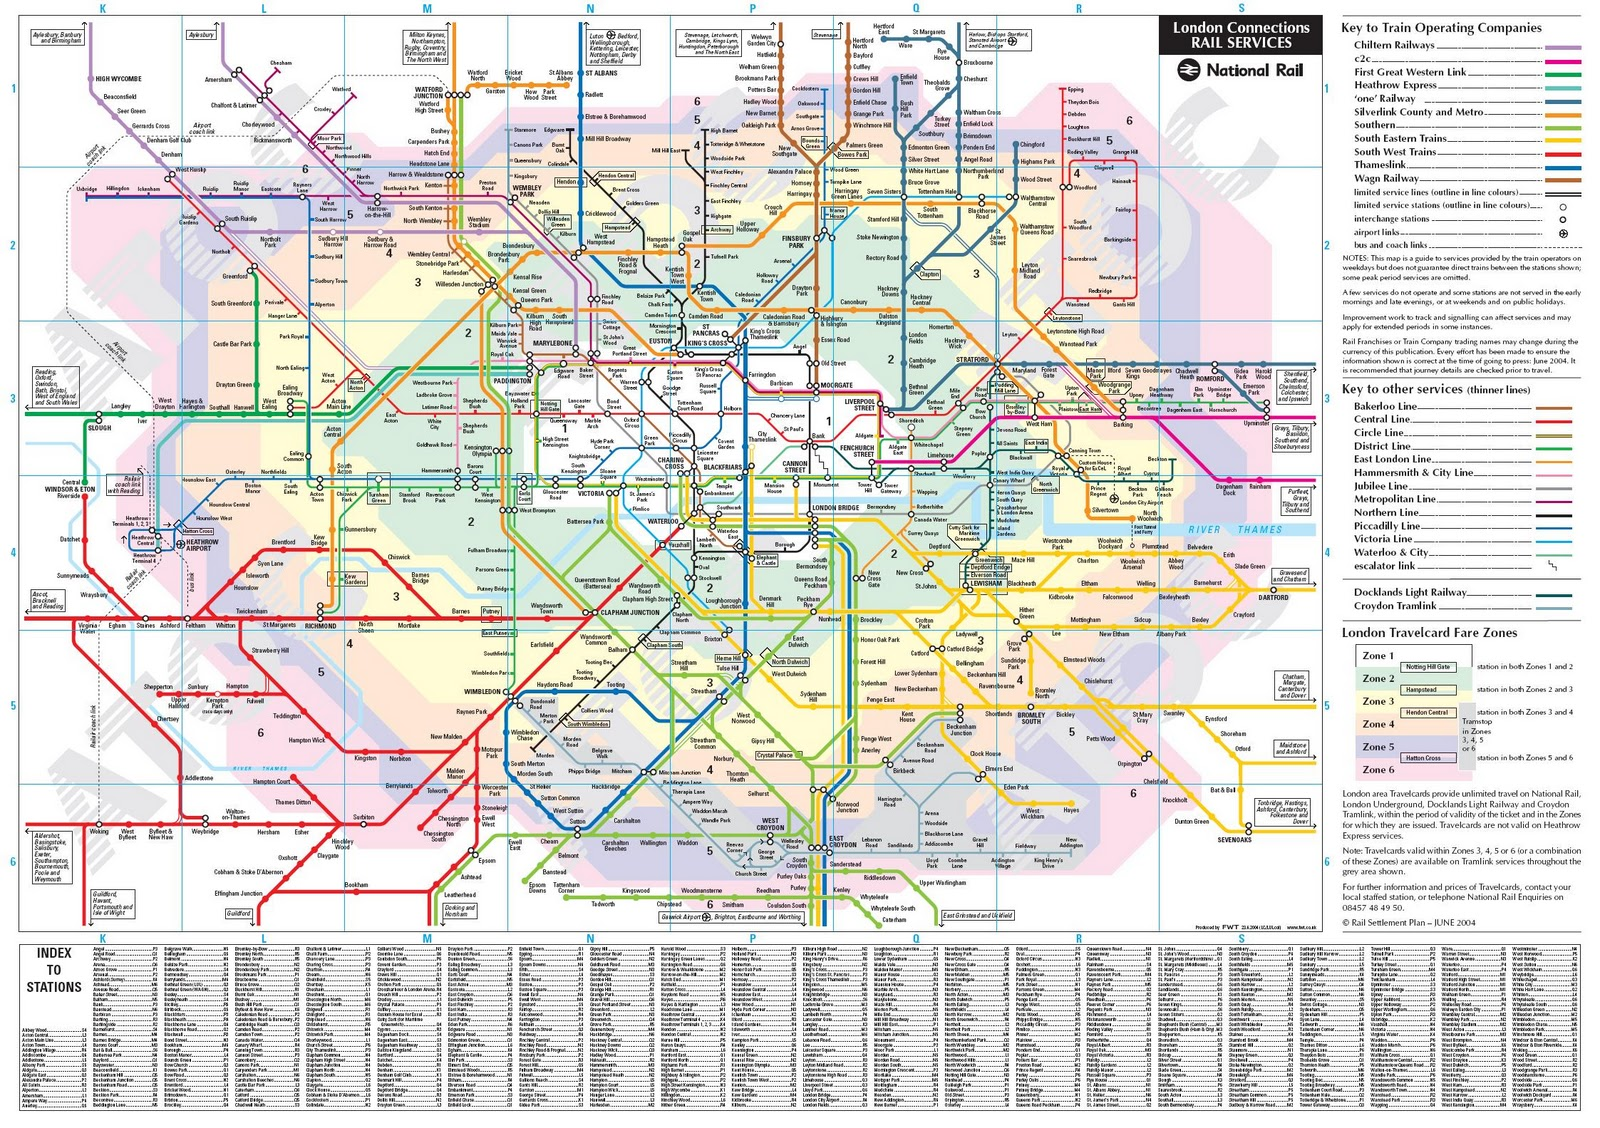 Maps Update 22501594 London Train and Tube Map London Tube and – Underground Train Map London